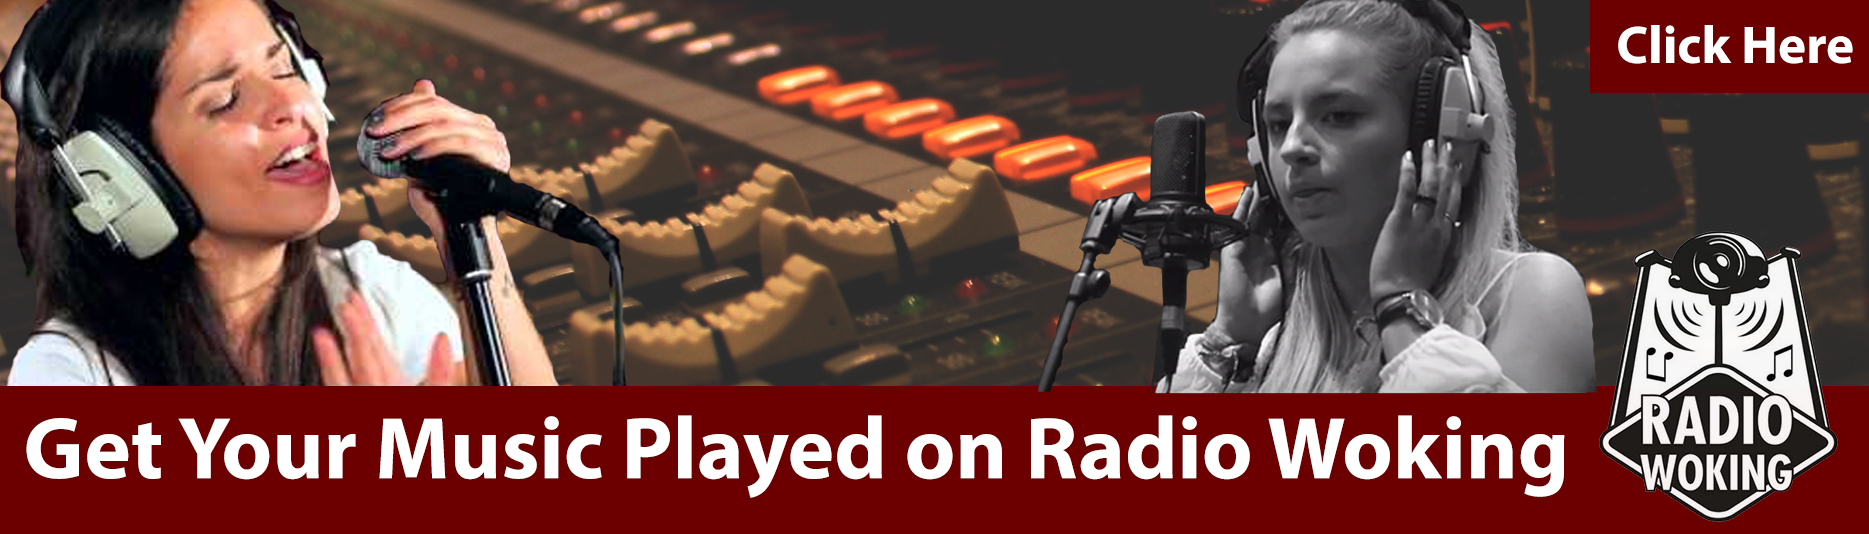 Get your music played on radiowoking